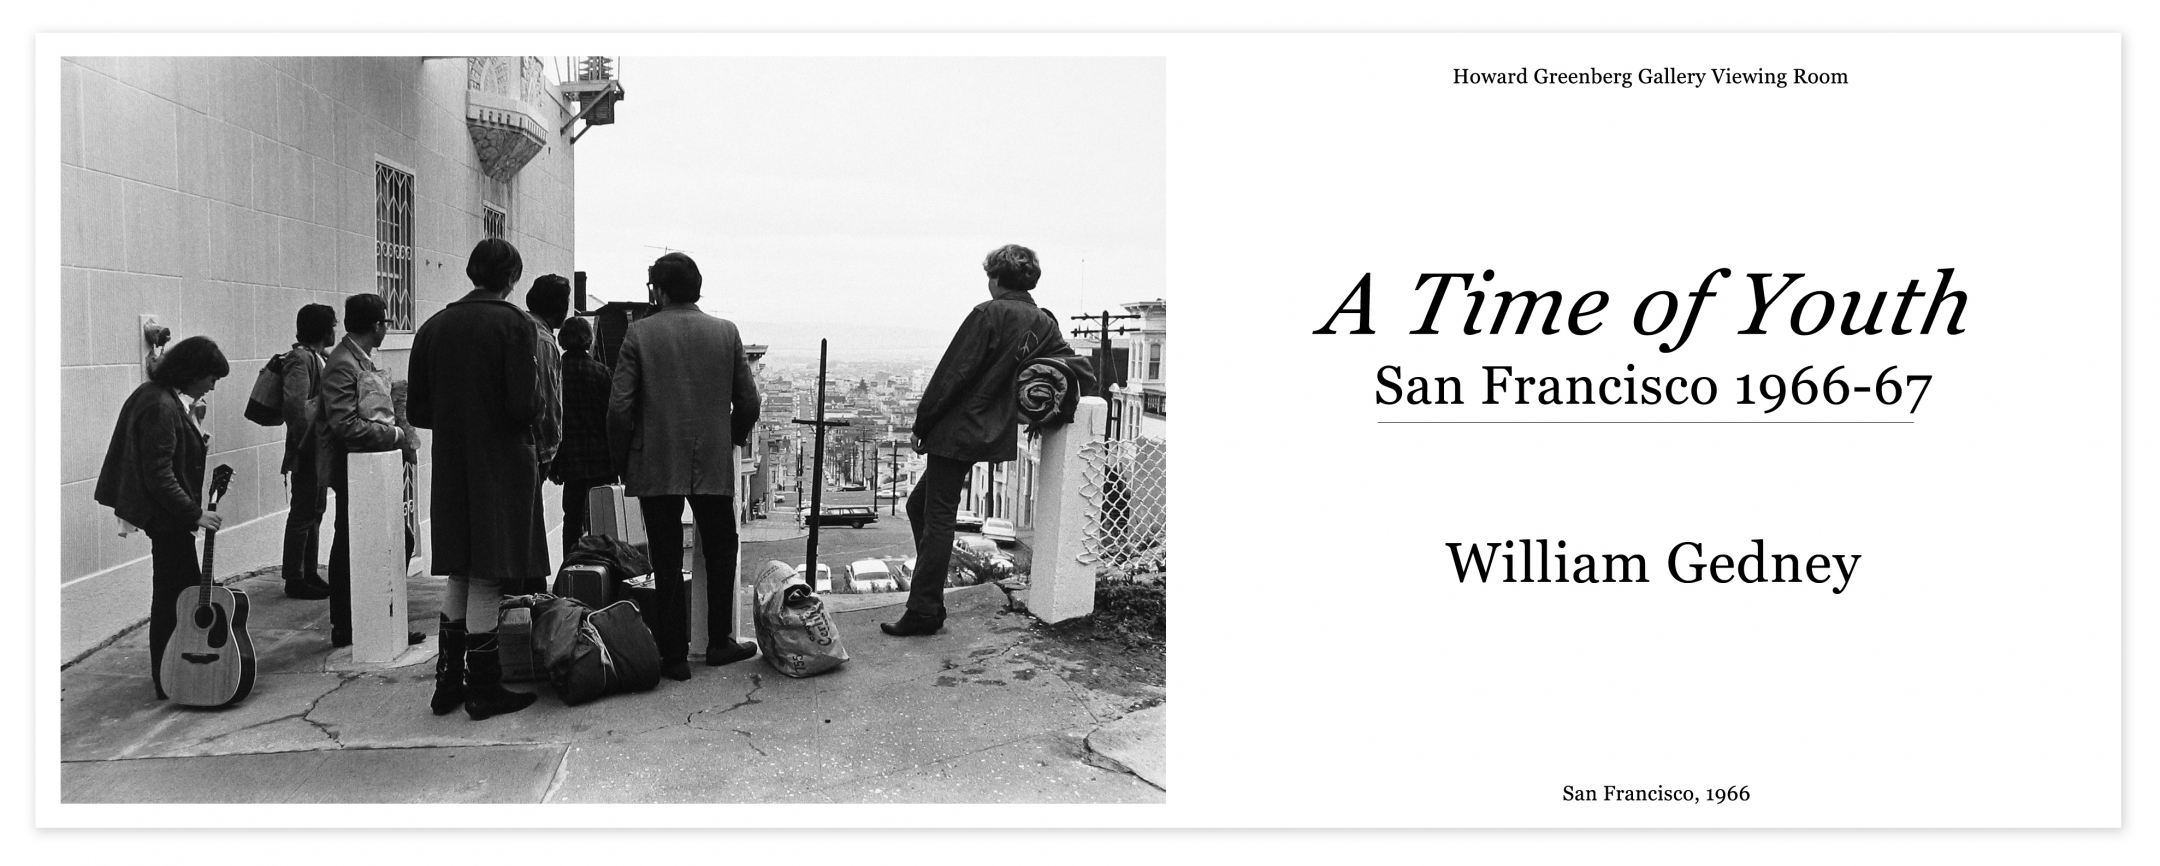 william gedney, a time of youth, san francisco 1966-67, howard greenberg gallery viewing room